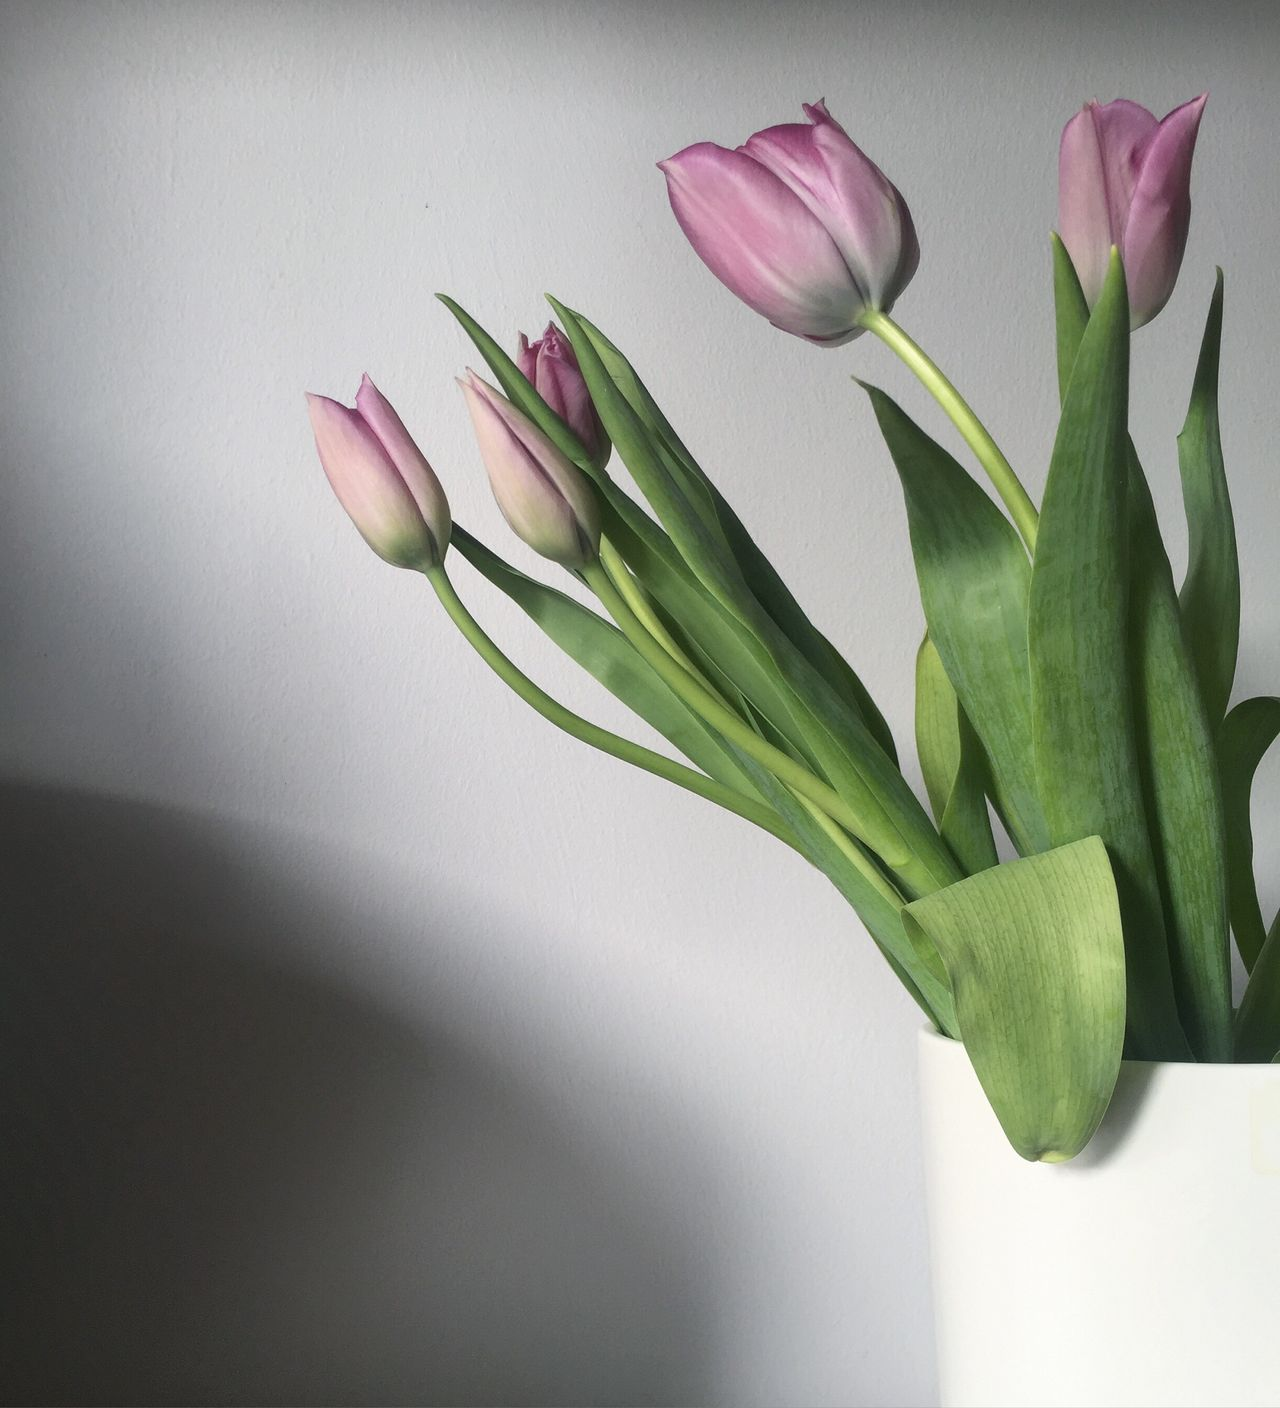 Millennial Pink Flower Freshness Fragility Petal Plant Vase Growth Nature Beauty In Nature Flower Head Close-up No People Tulip Indoors  Day Crocus